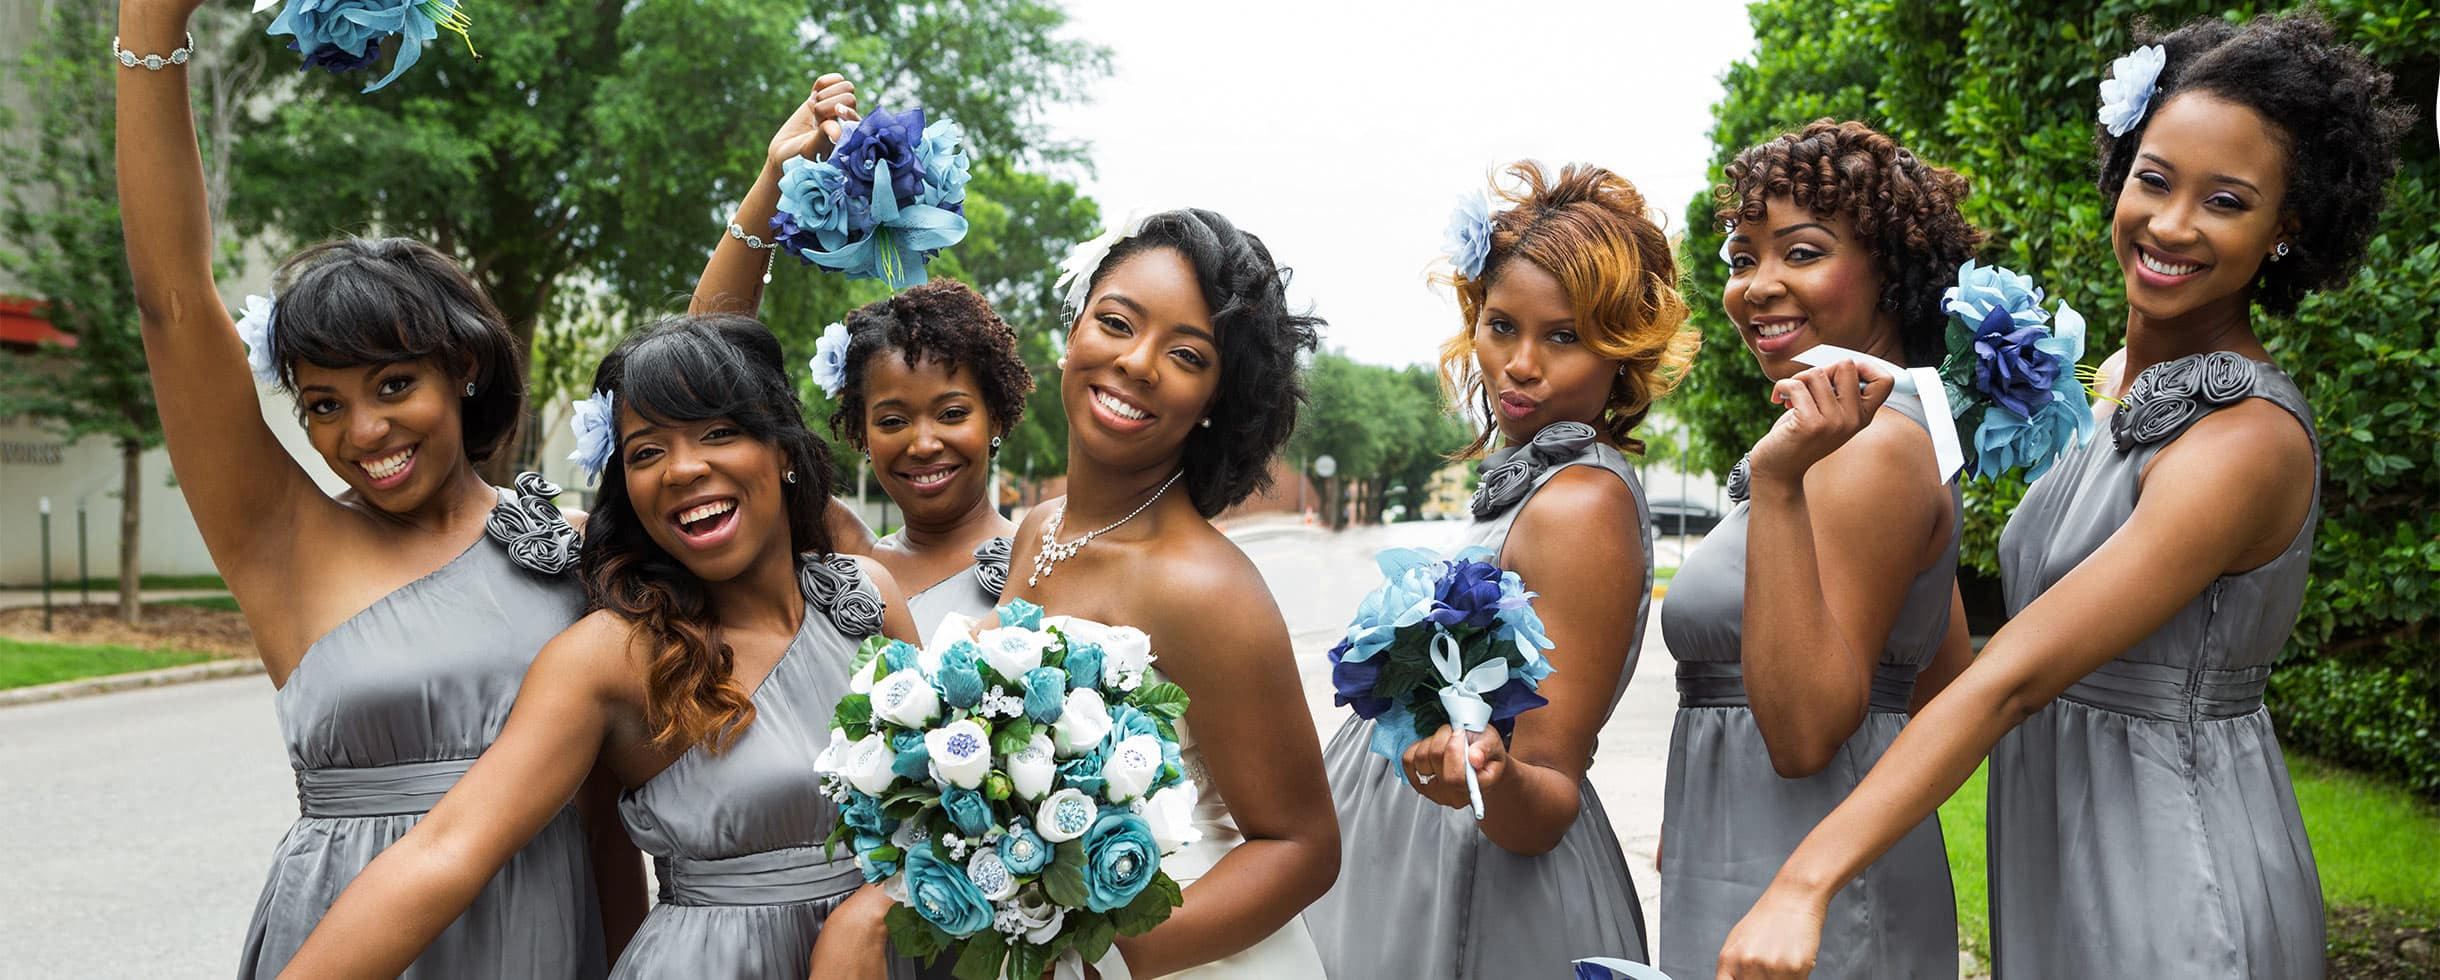 Happy Bride with her Bridesmaids in New York